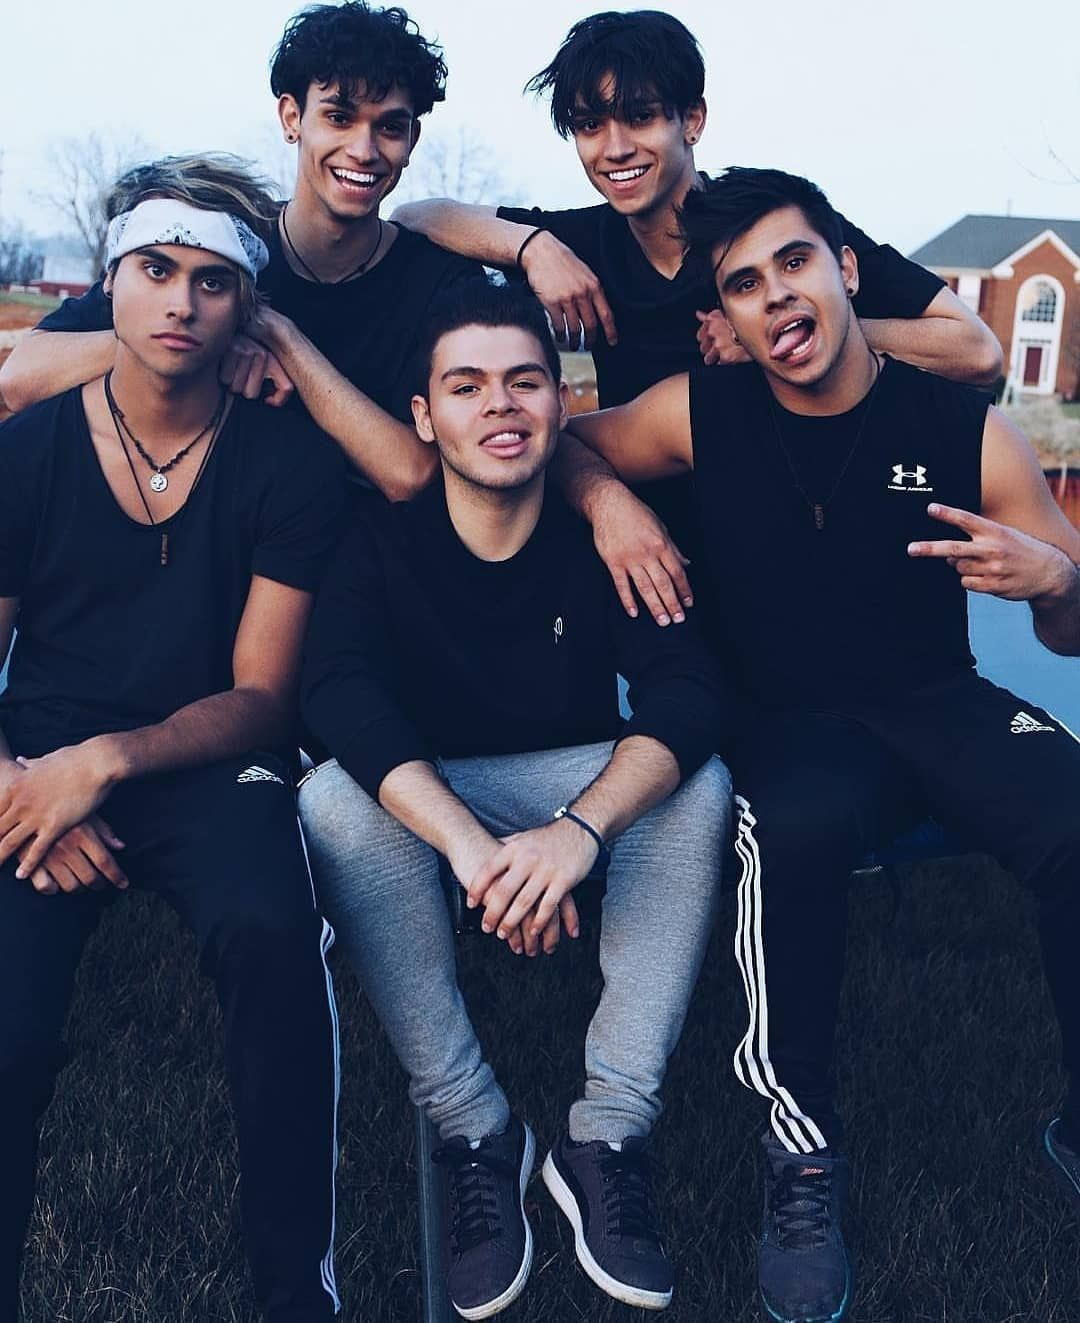 THE DOBRE BROTHERS PHOTO WHITE T-SHIRT CHILD ADULT TOP TEE COMEDY VLOGGERS